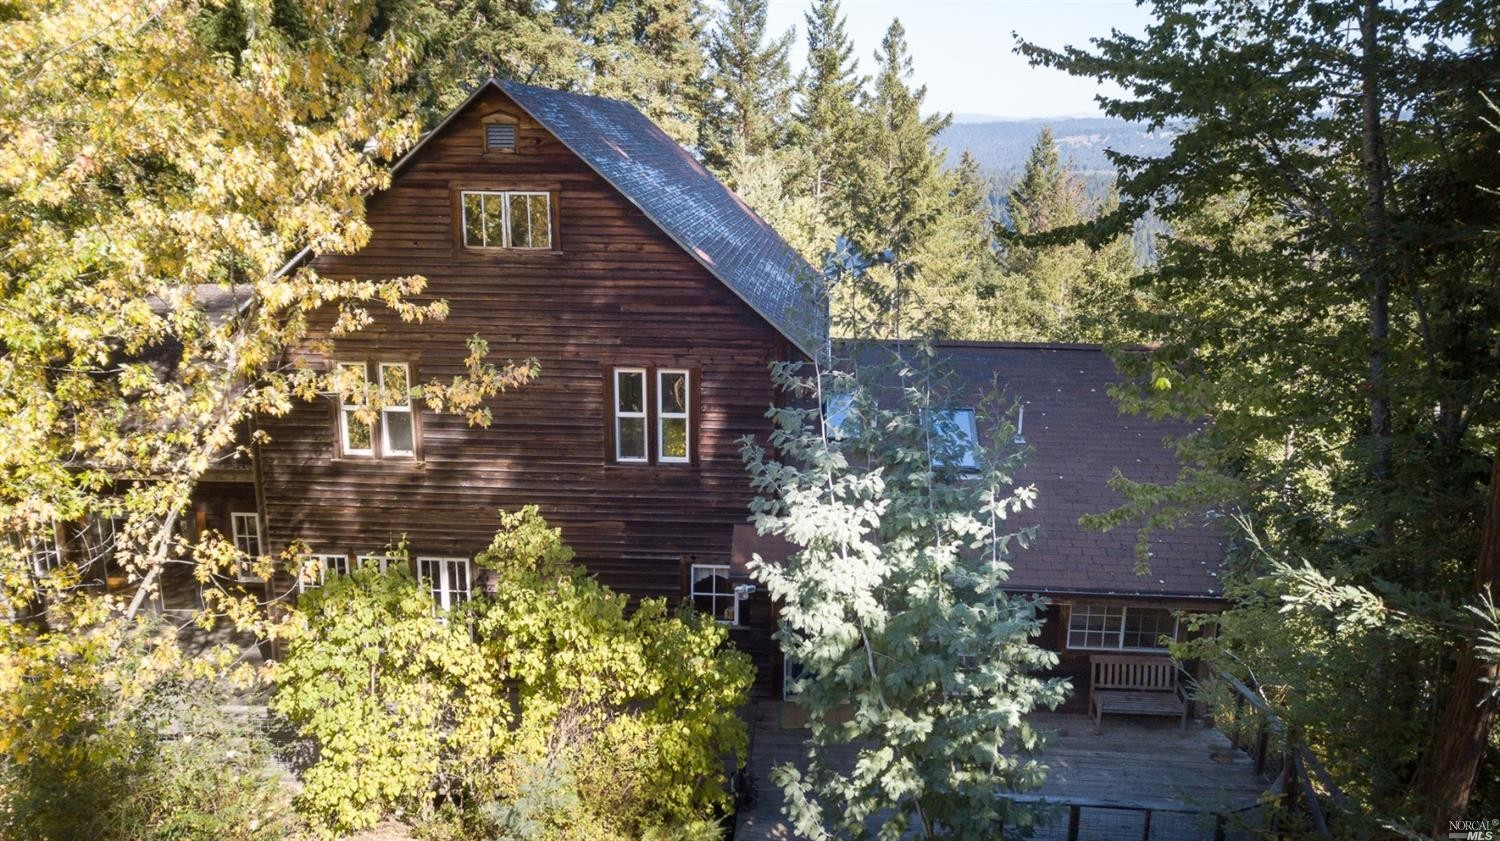 Family home for sale in the mountains above Philo, California